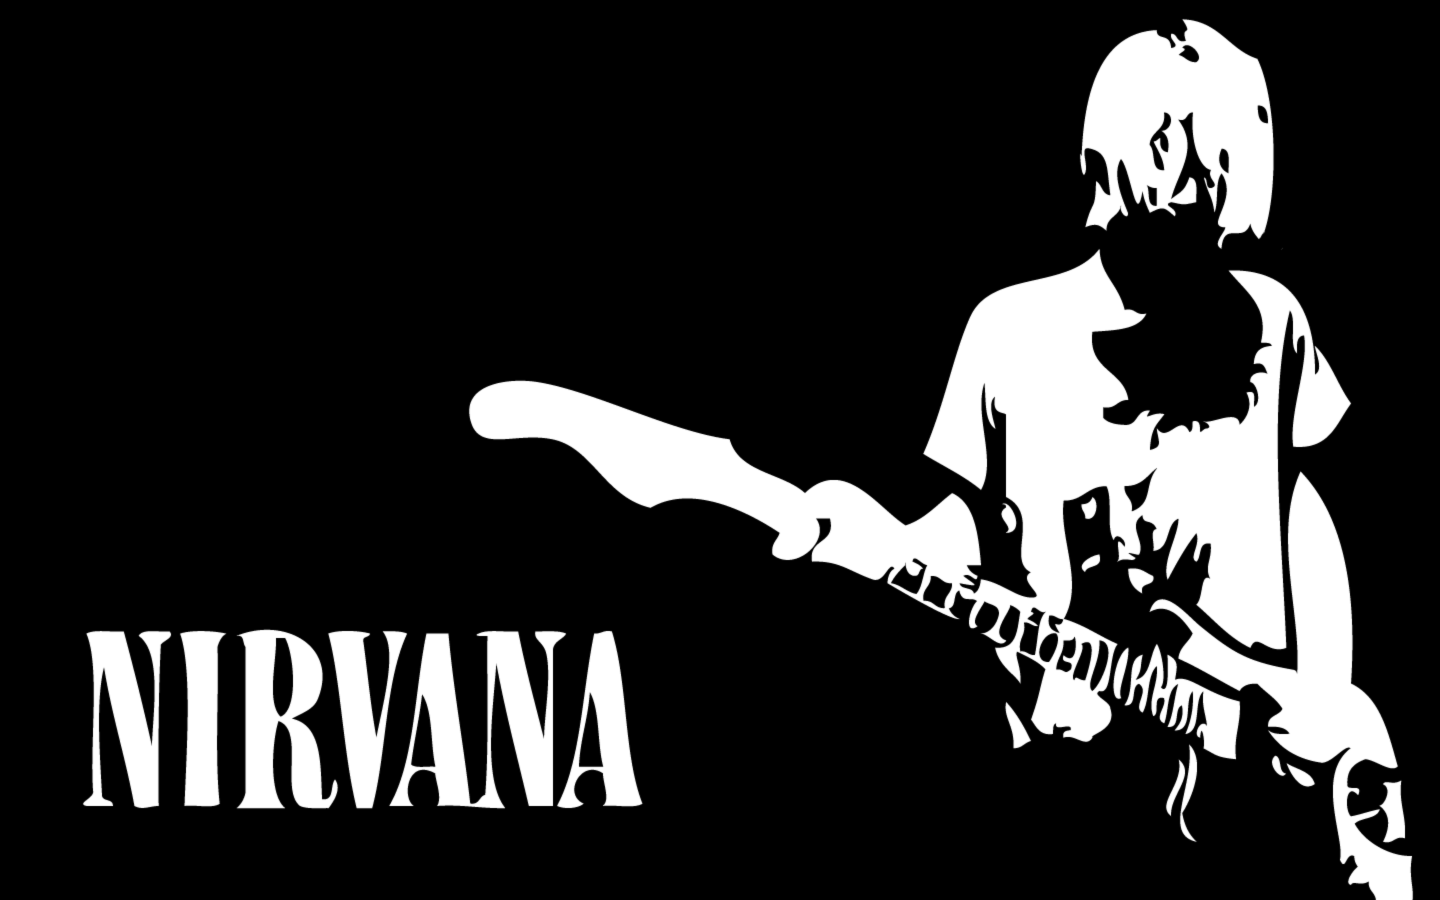 Free Download Esta Vez Traigo Wallpapers De Nirvana Espero